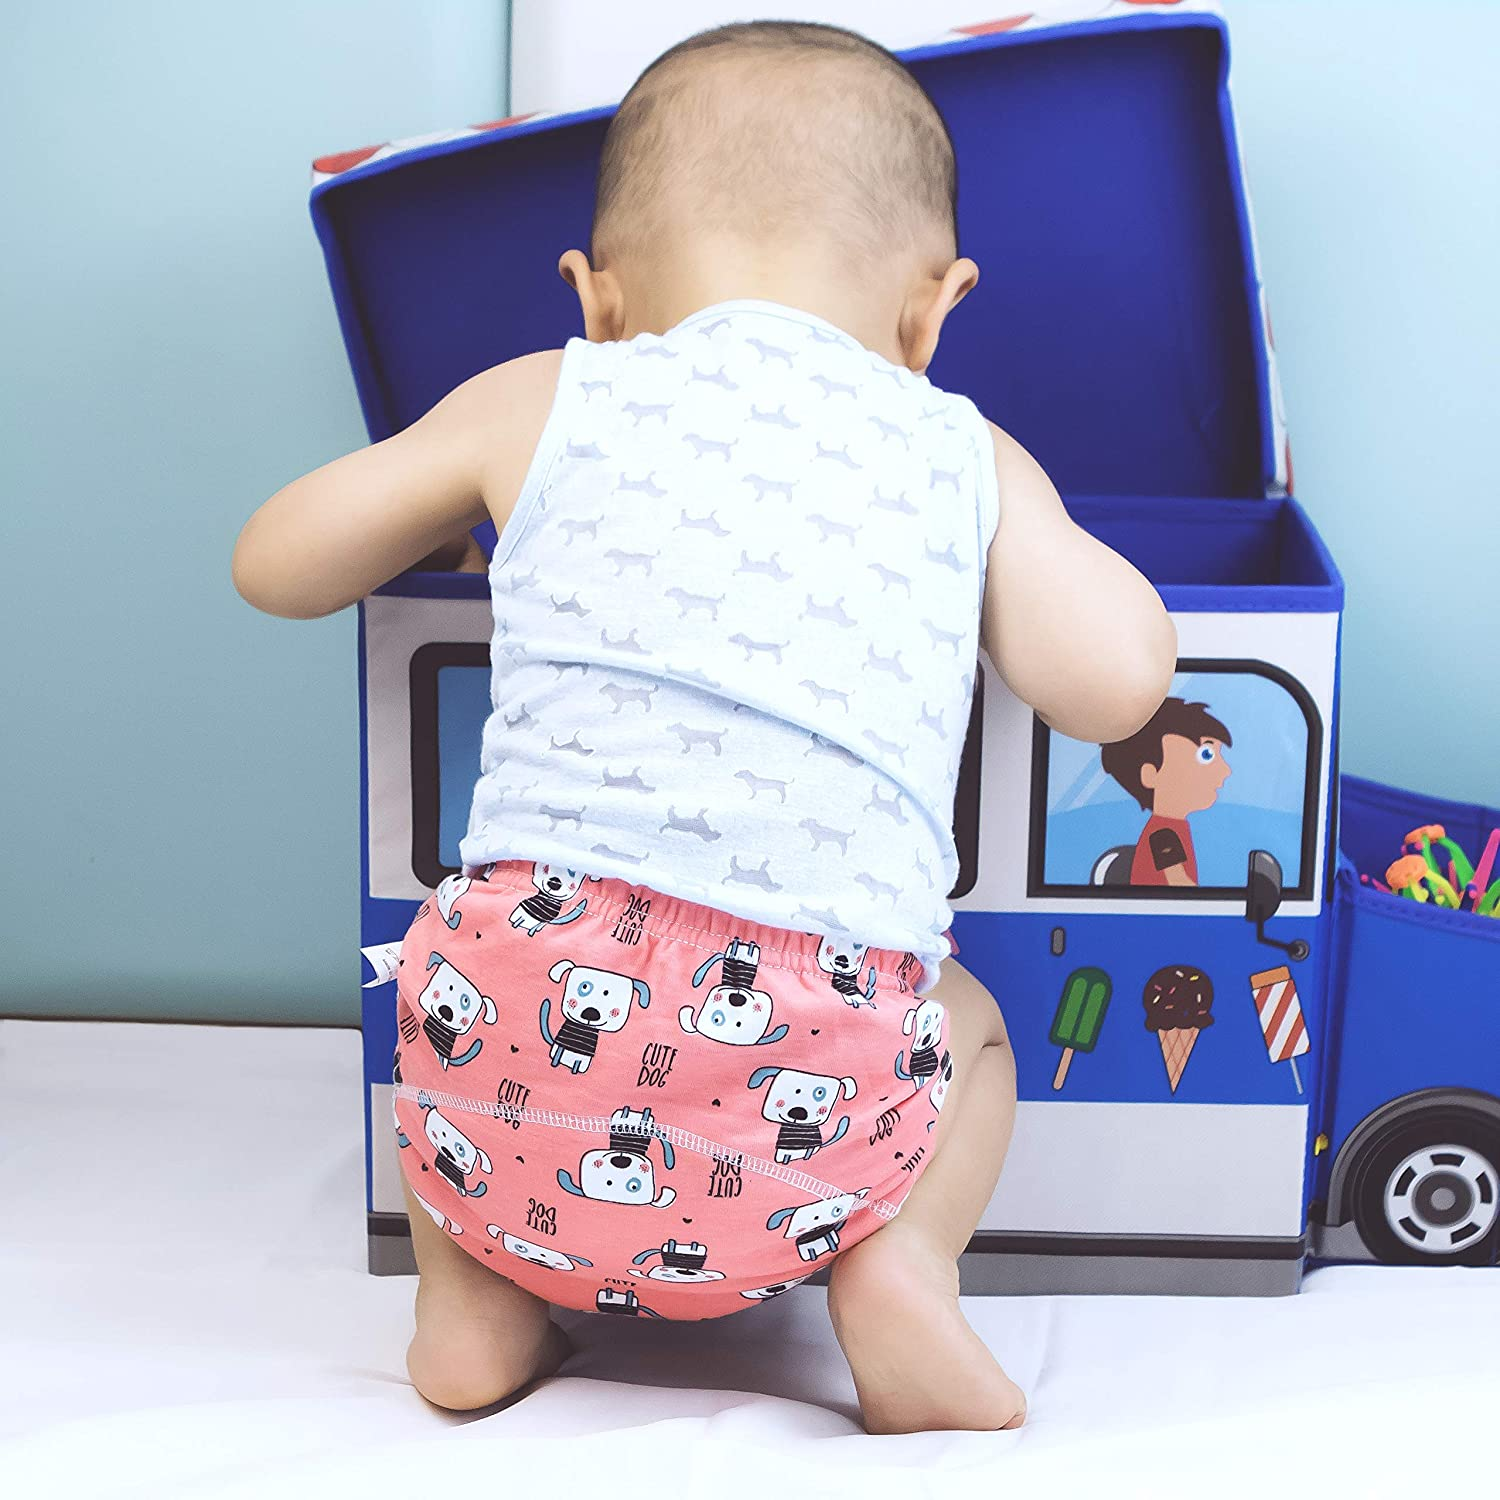 U0U Baby Girls/' 4 Pack Cotton Training Pants Toddler Potty Training Underwear for Boys and Girls 12M-4T